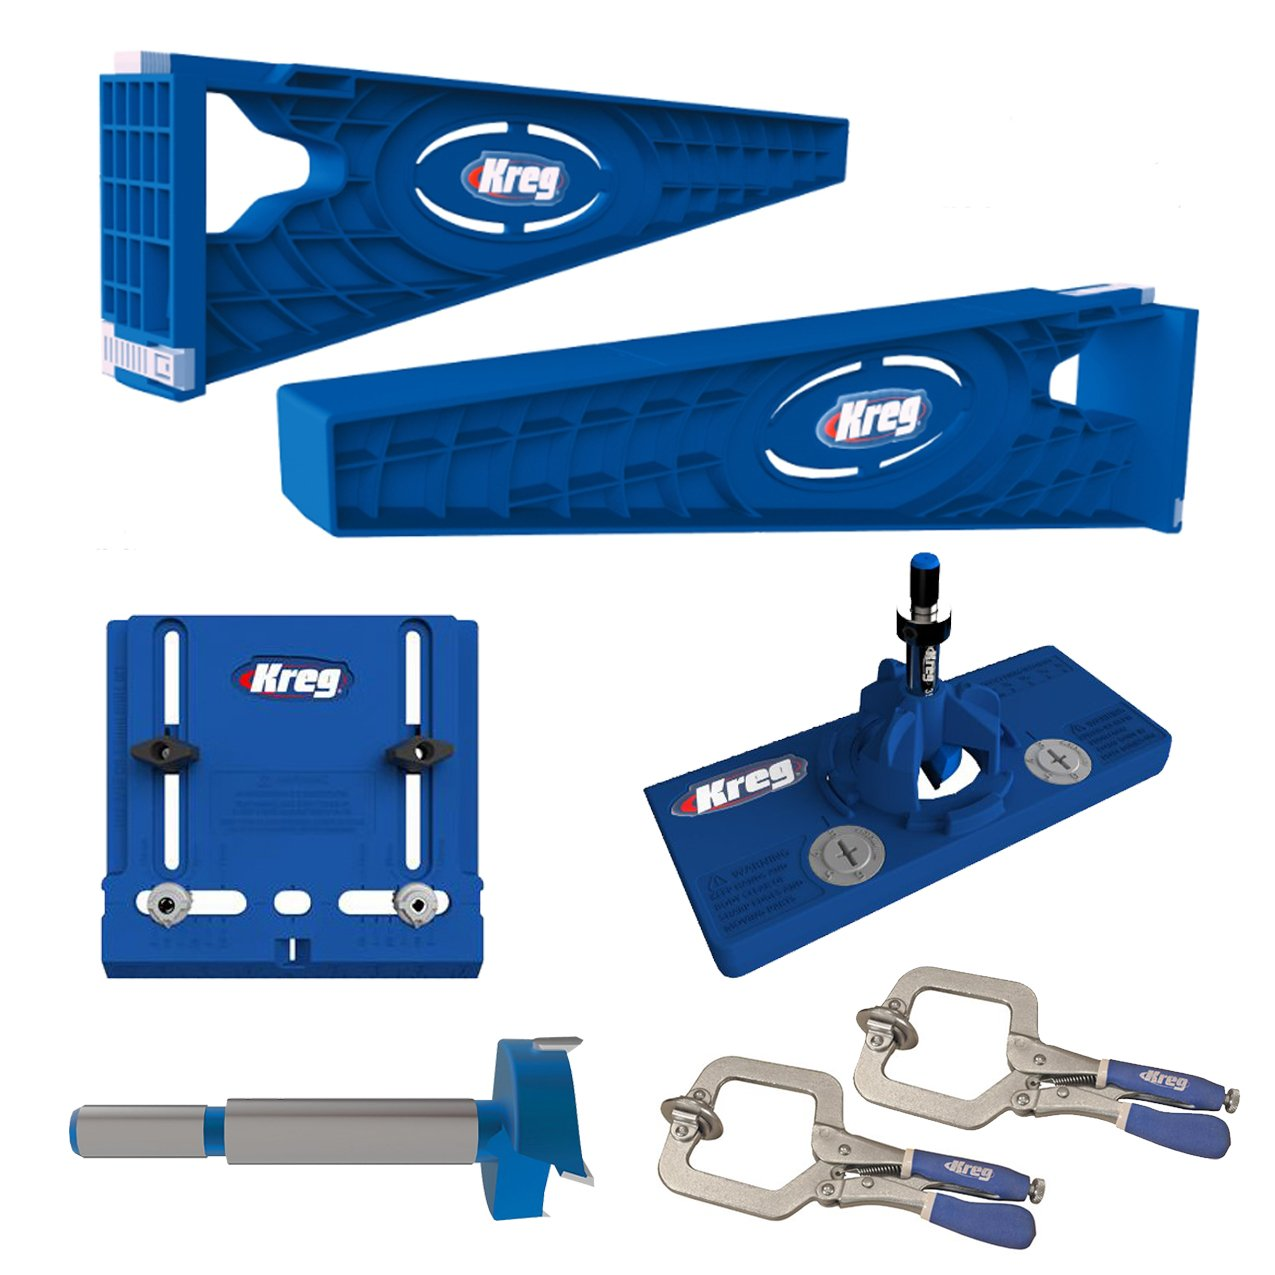 Kreg Slide Mounting Tool, Cabinet Hardware Jig, Hinge Jig & Bit With 2 Face Clamps